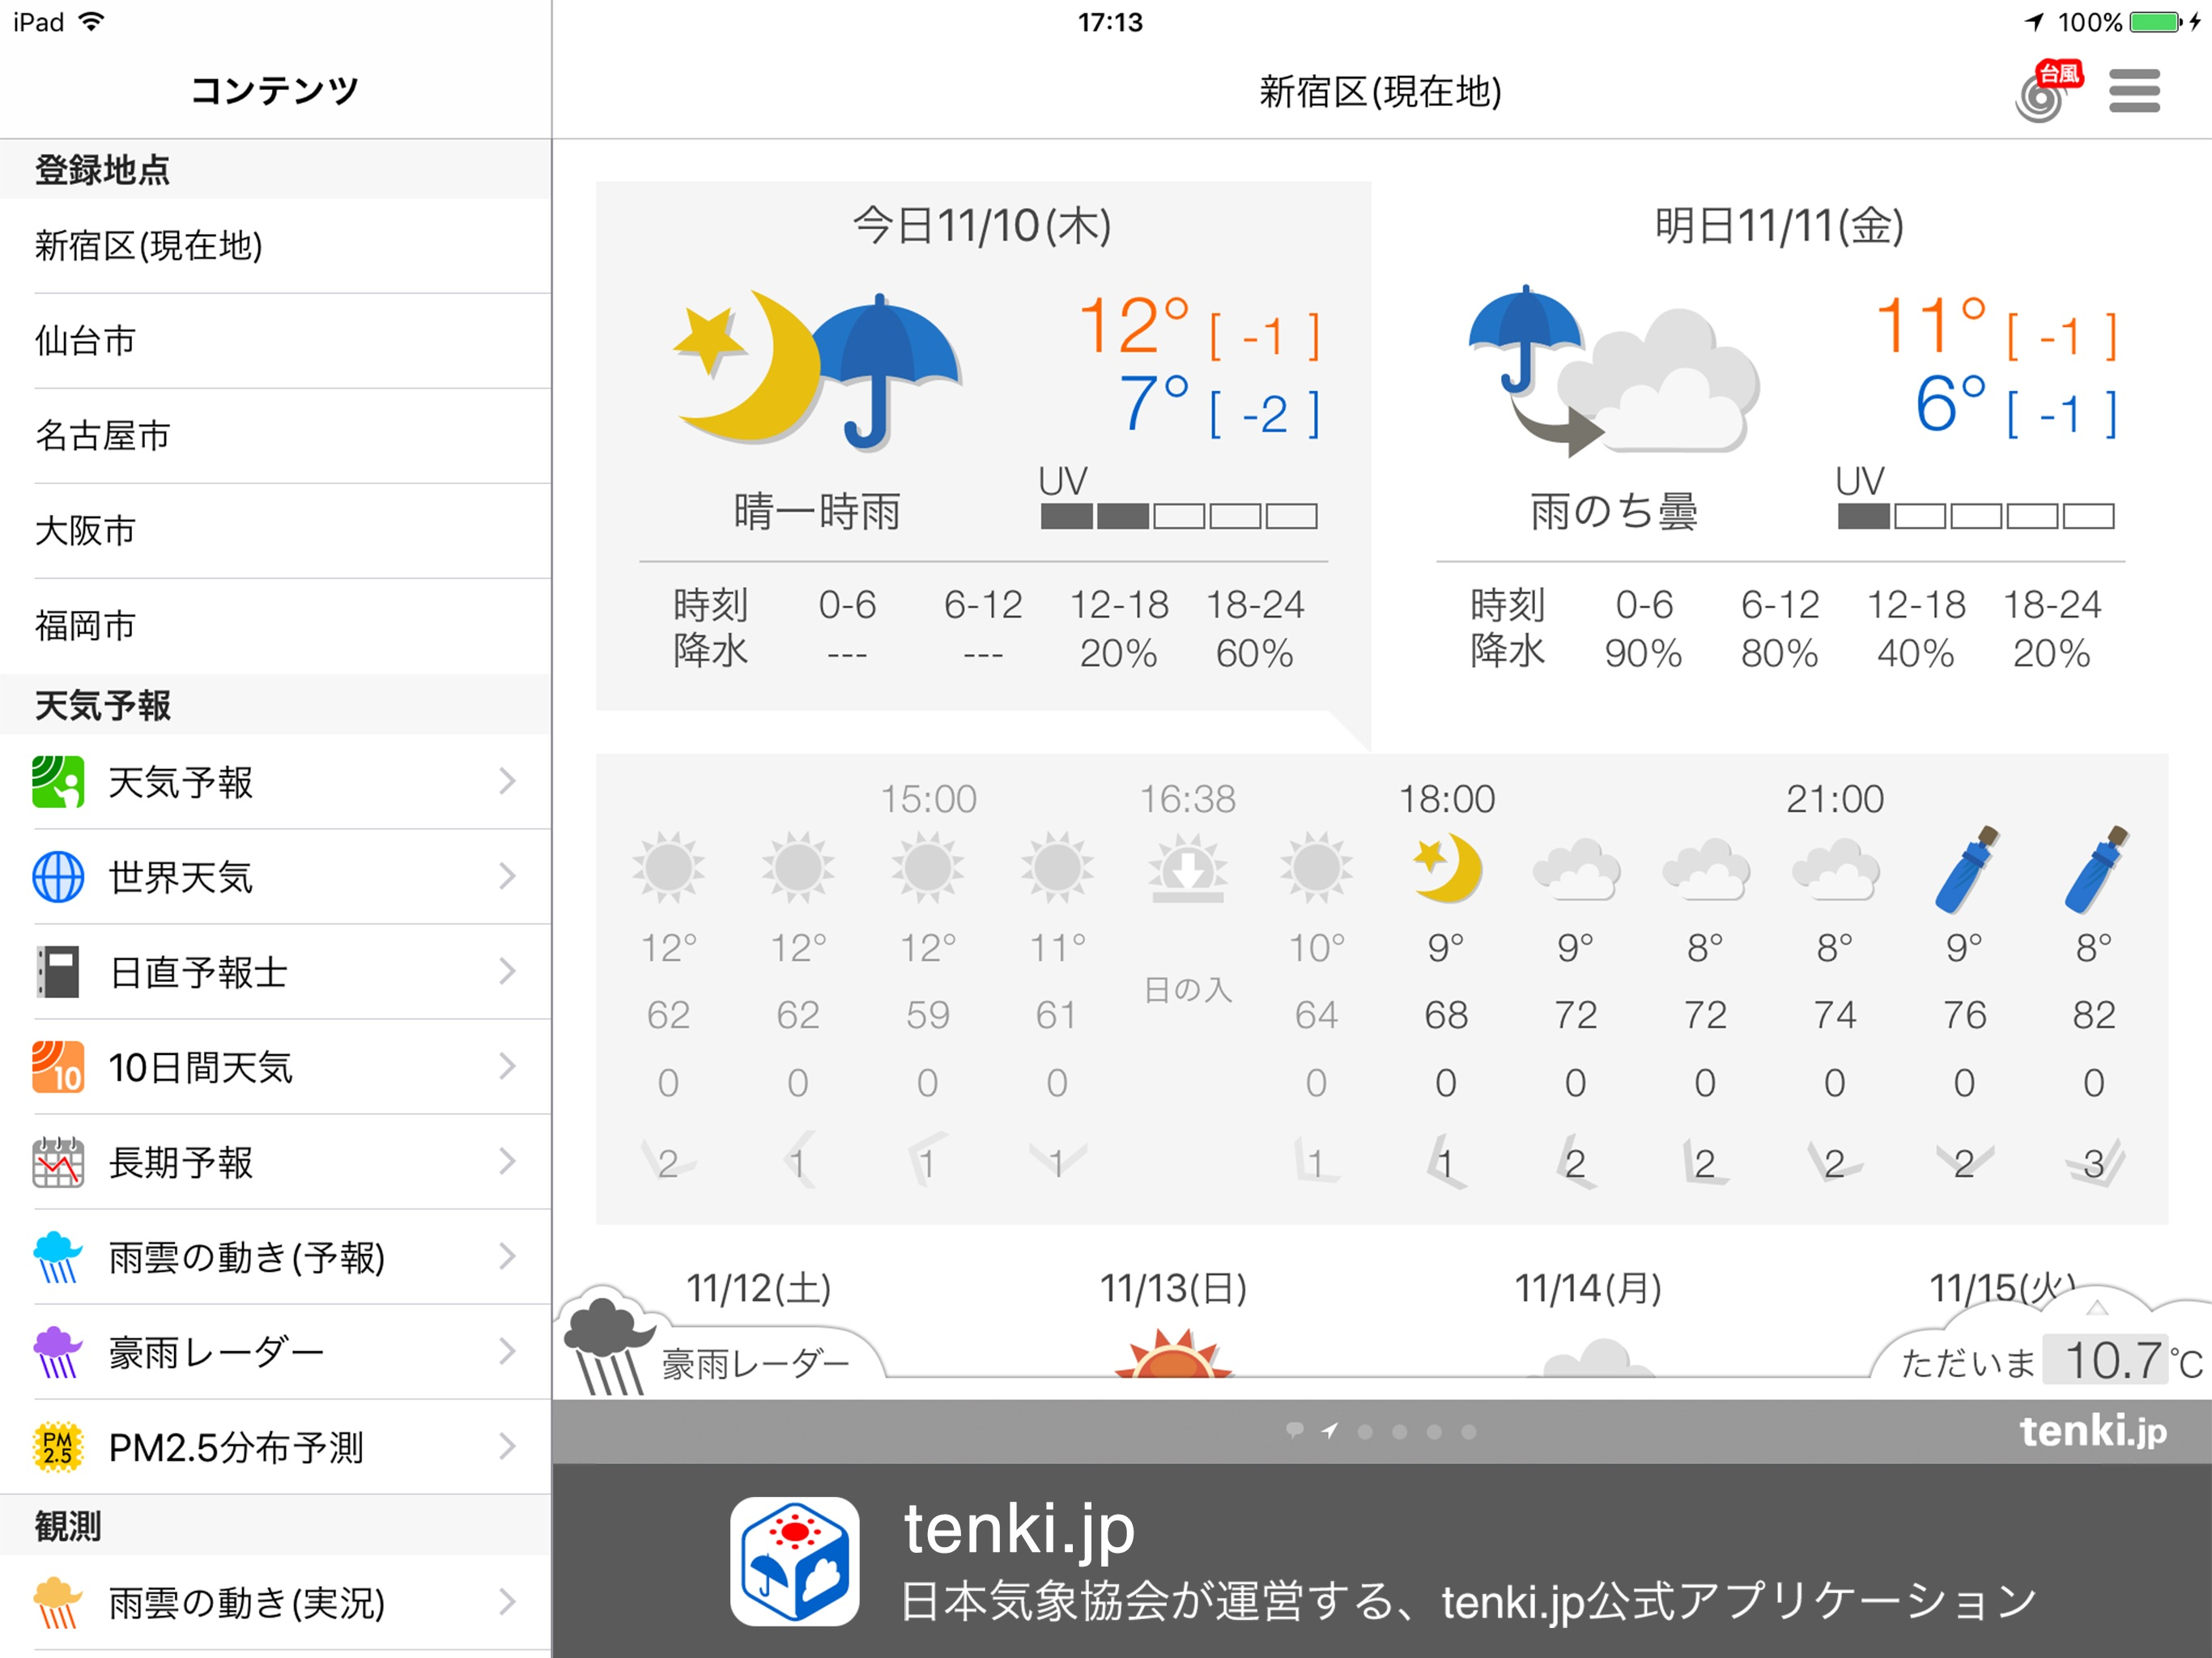 tenki.jp for iPad Screenshot